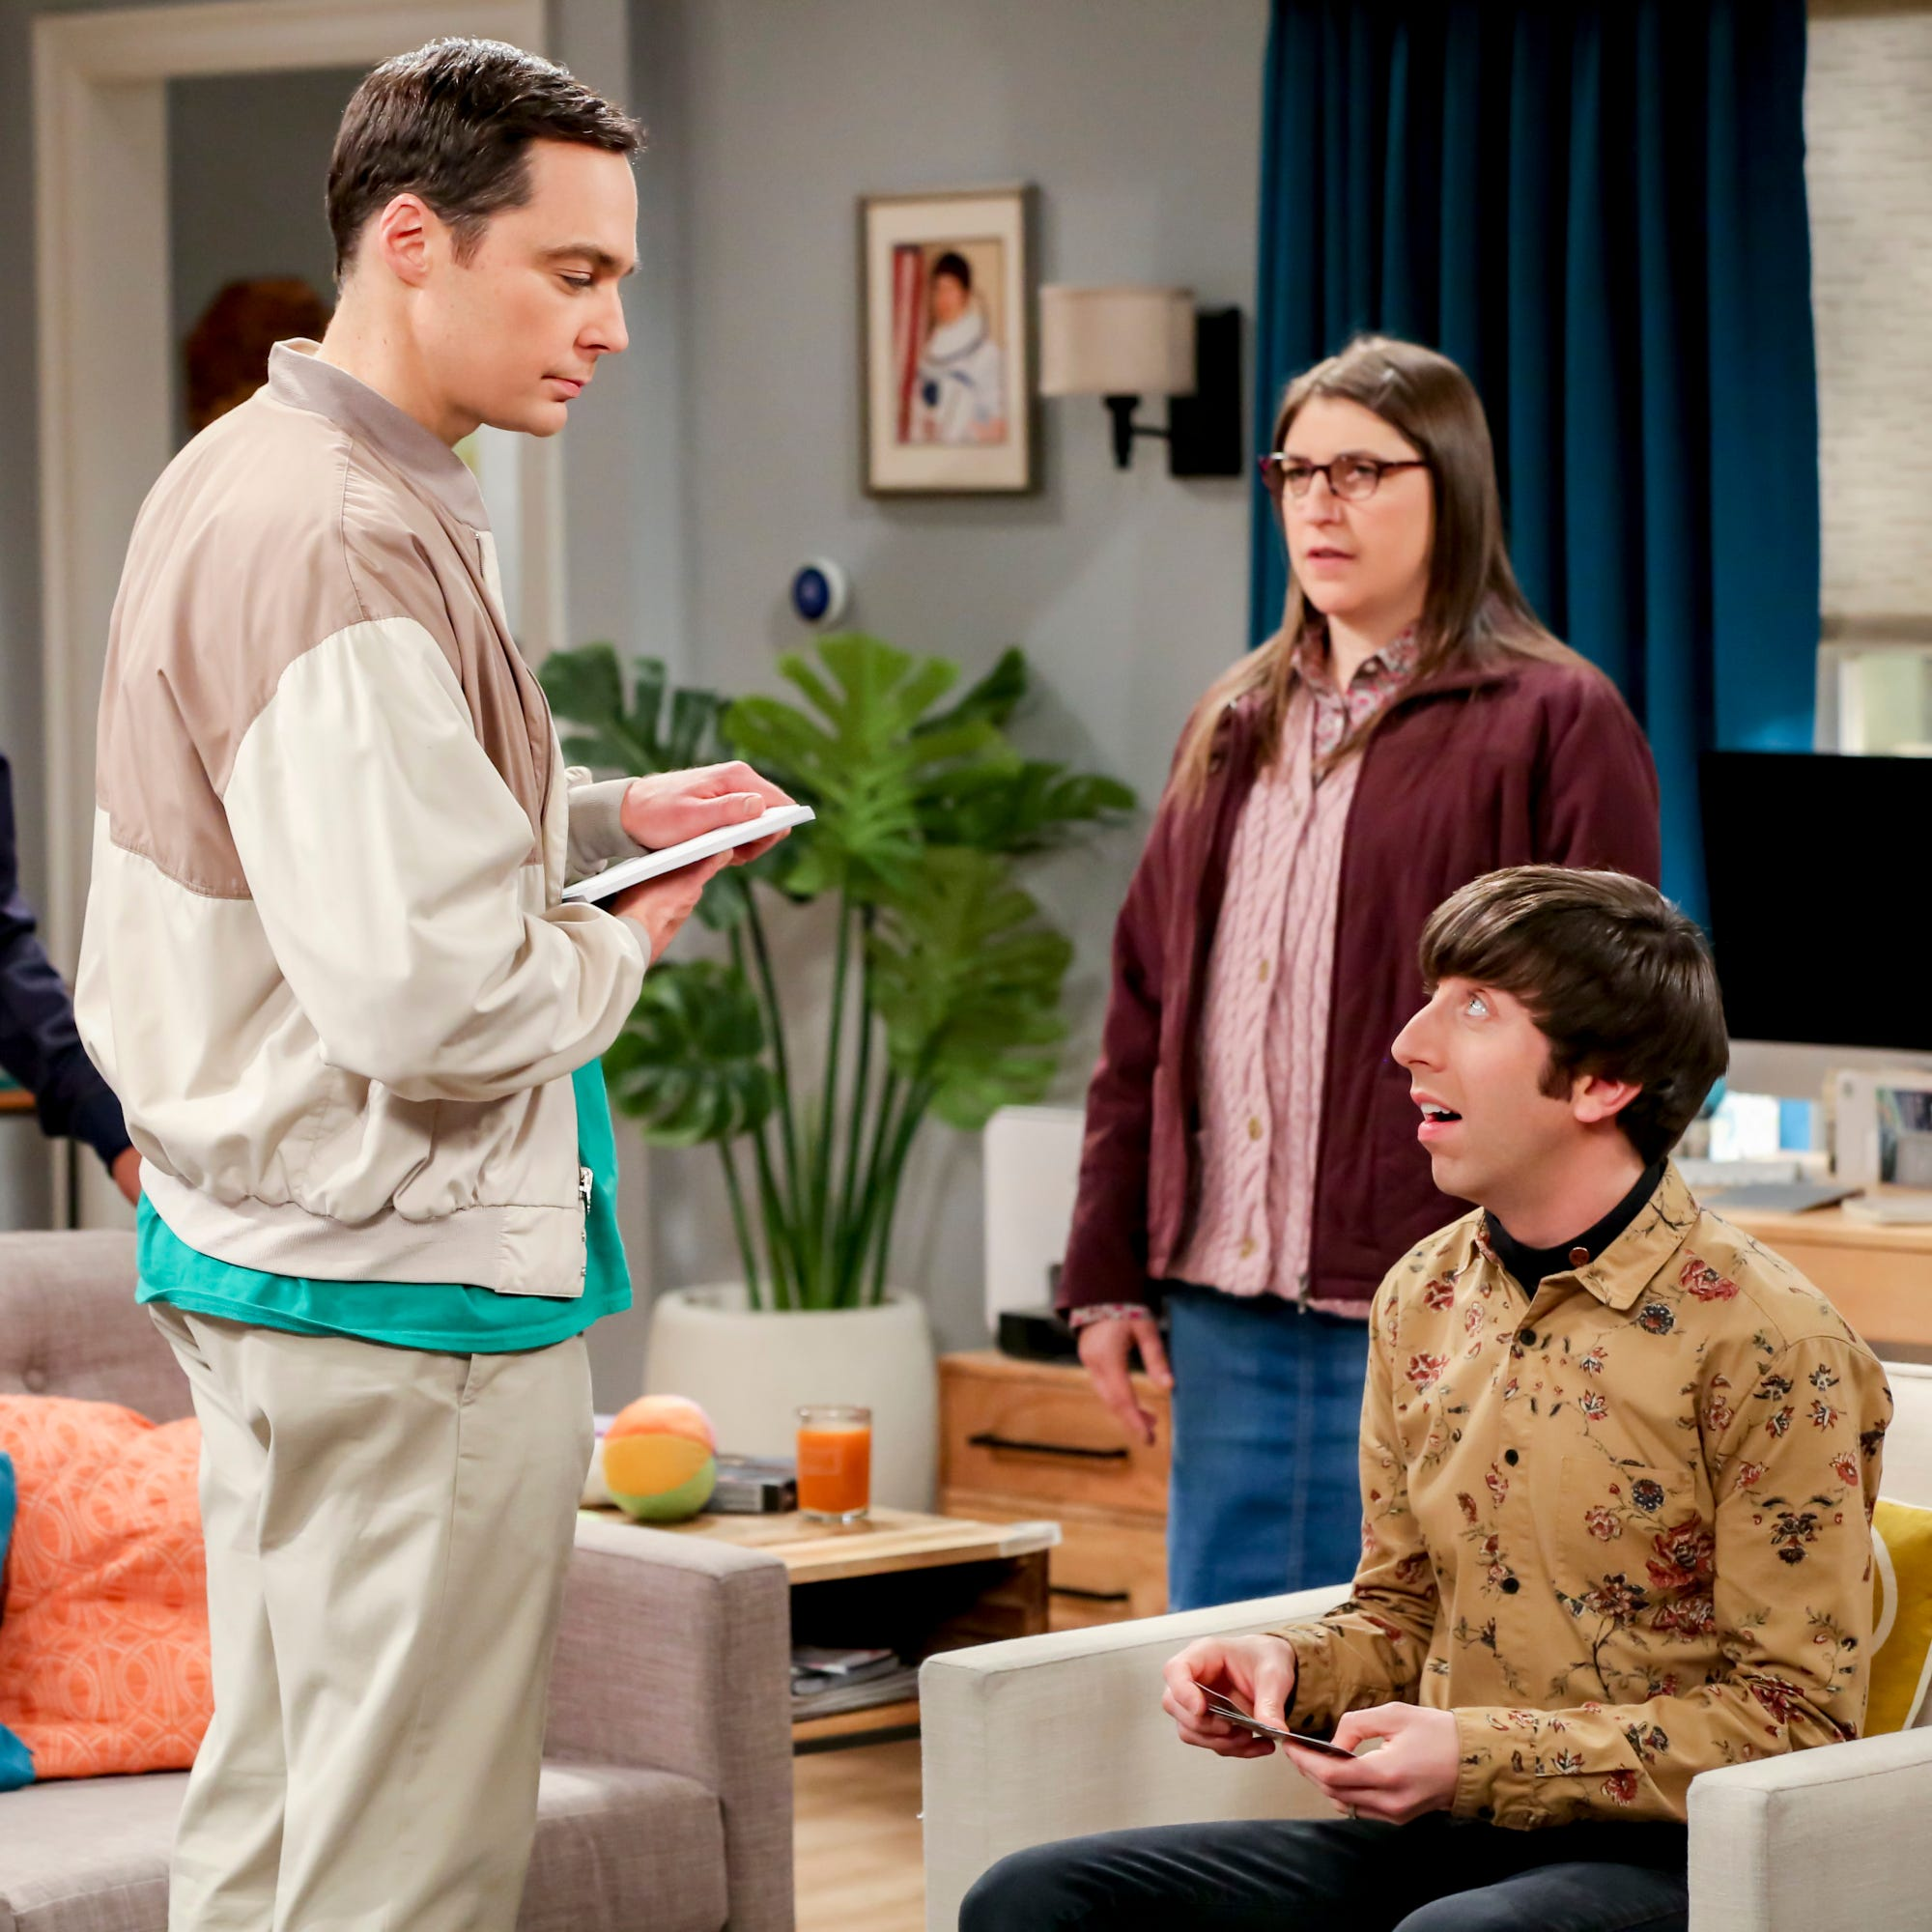 'The Big Bang Theory' to feature Delawarean's book on Thursday's episode